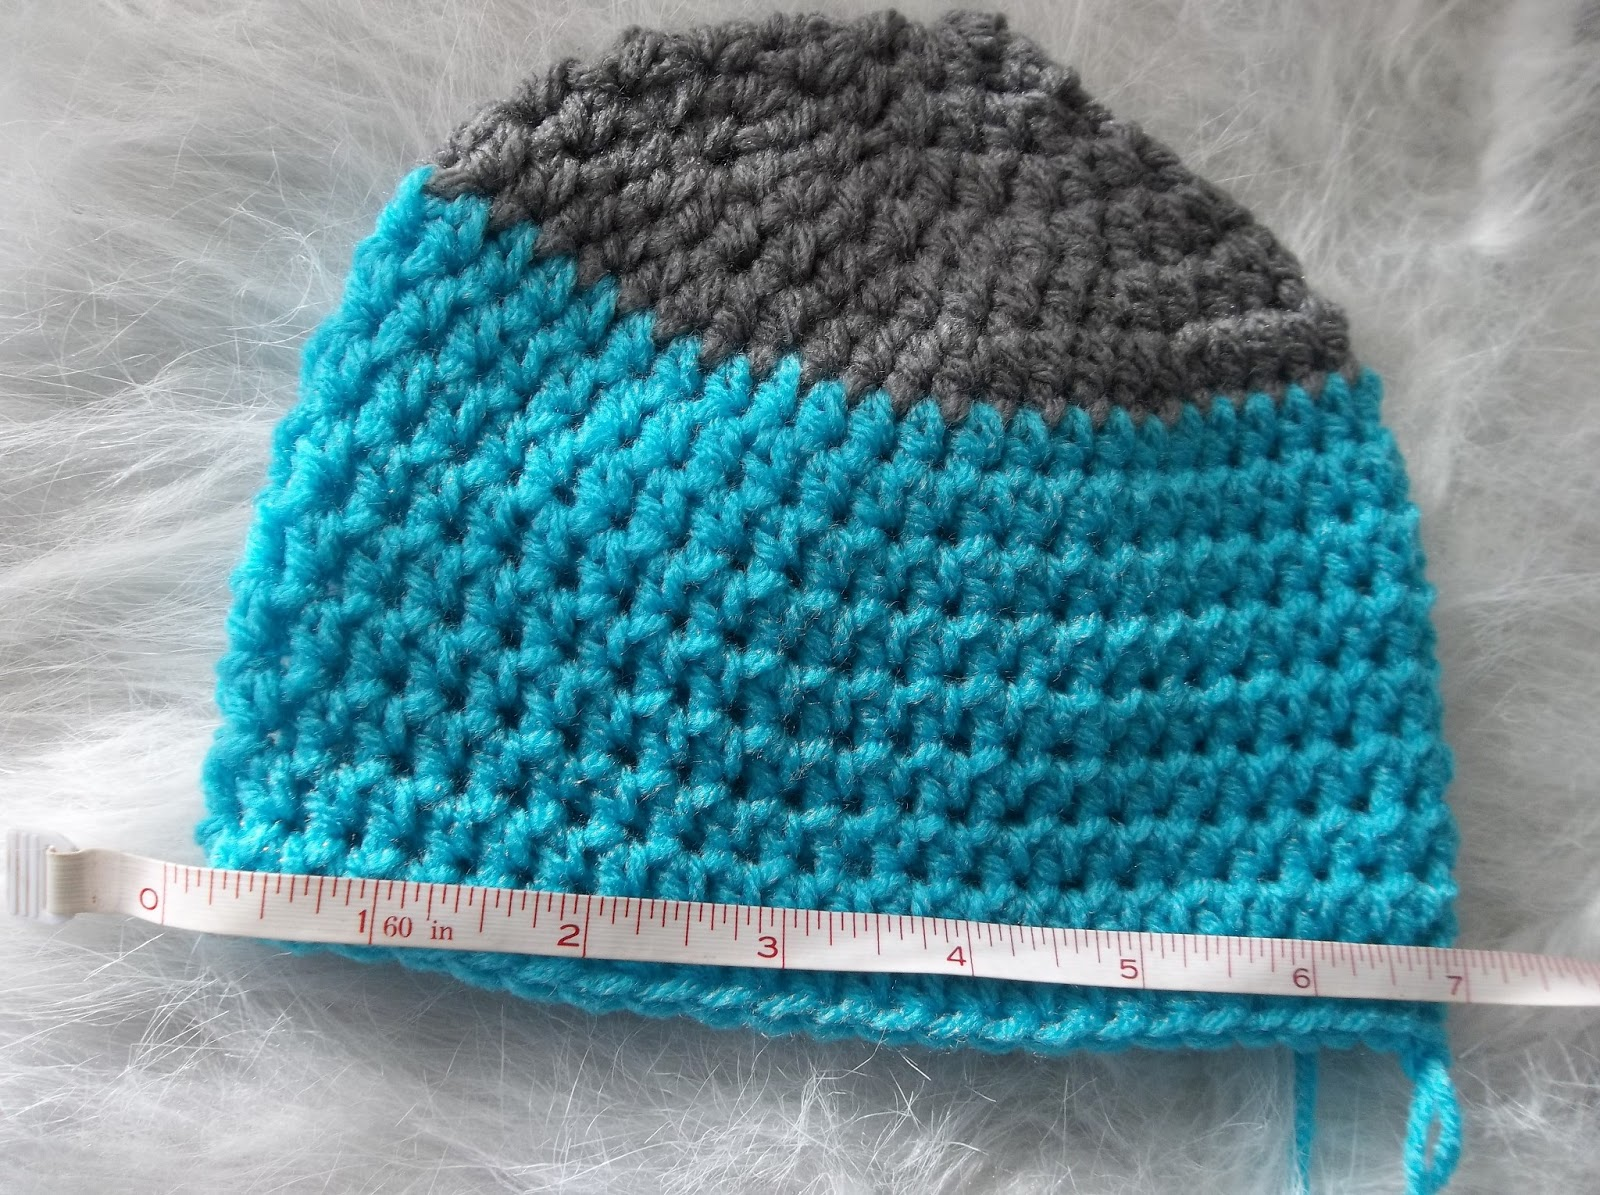 Creating Beautiful Things in Life: How to Crochet a Properly Sized Hat